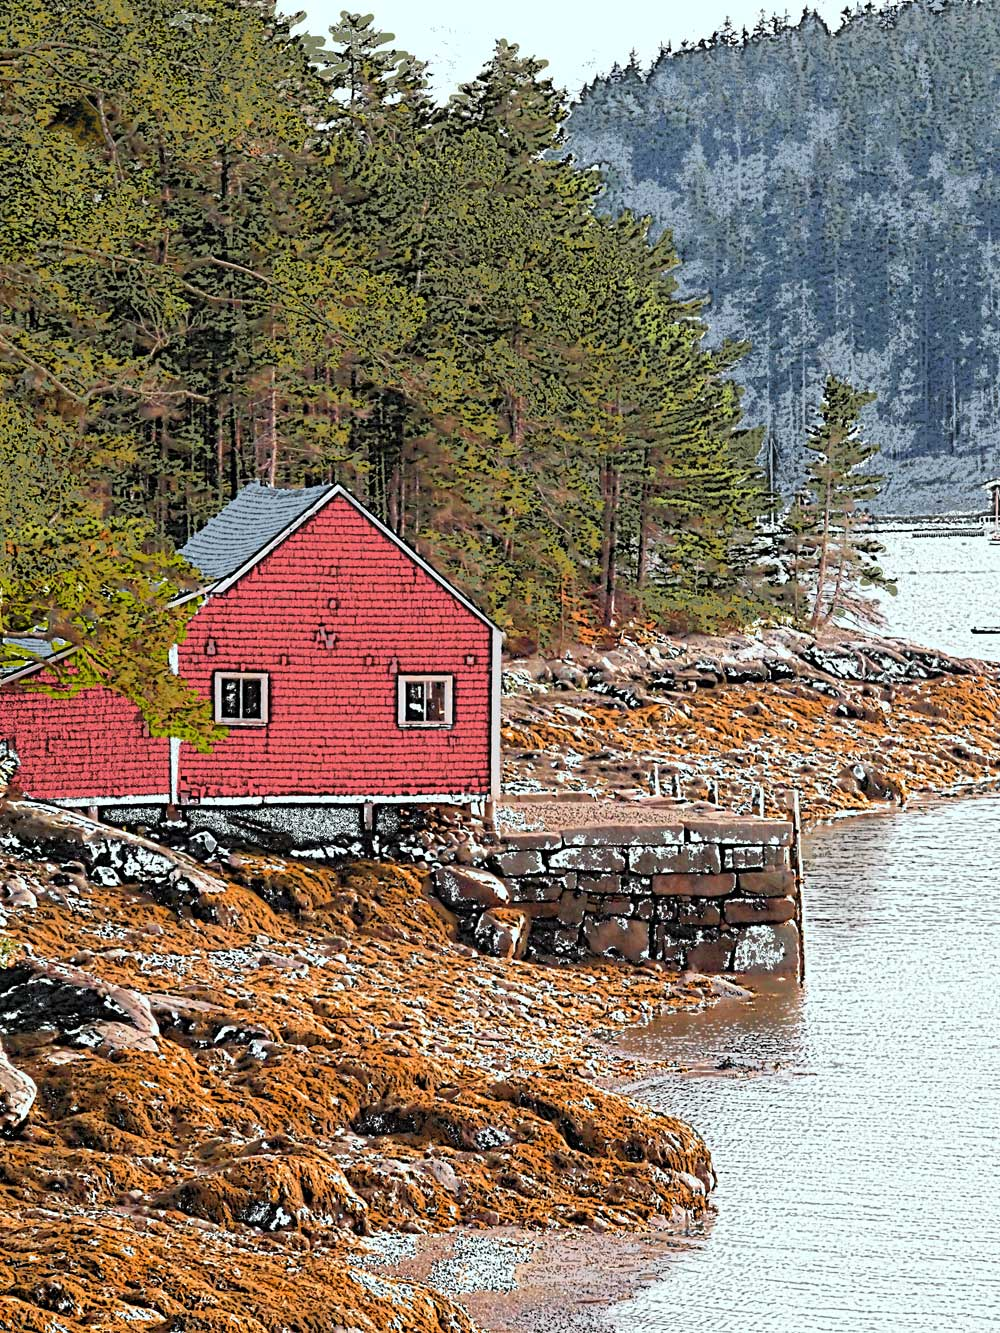 Bucks Harbor, Maine. Artwork from photo.